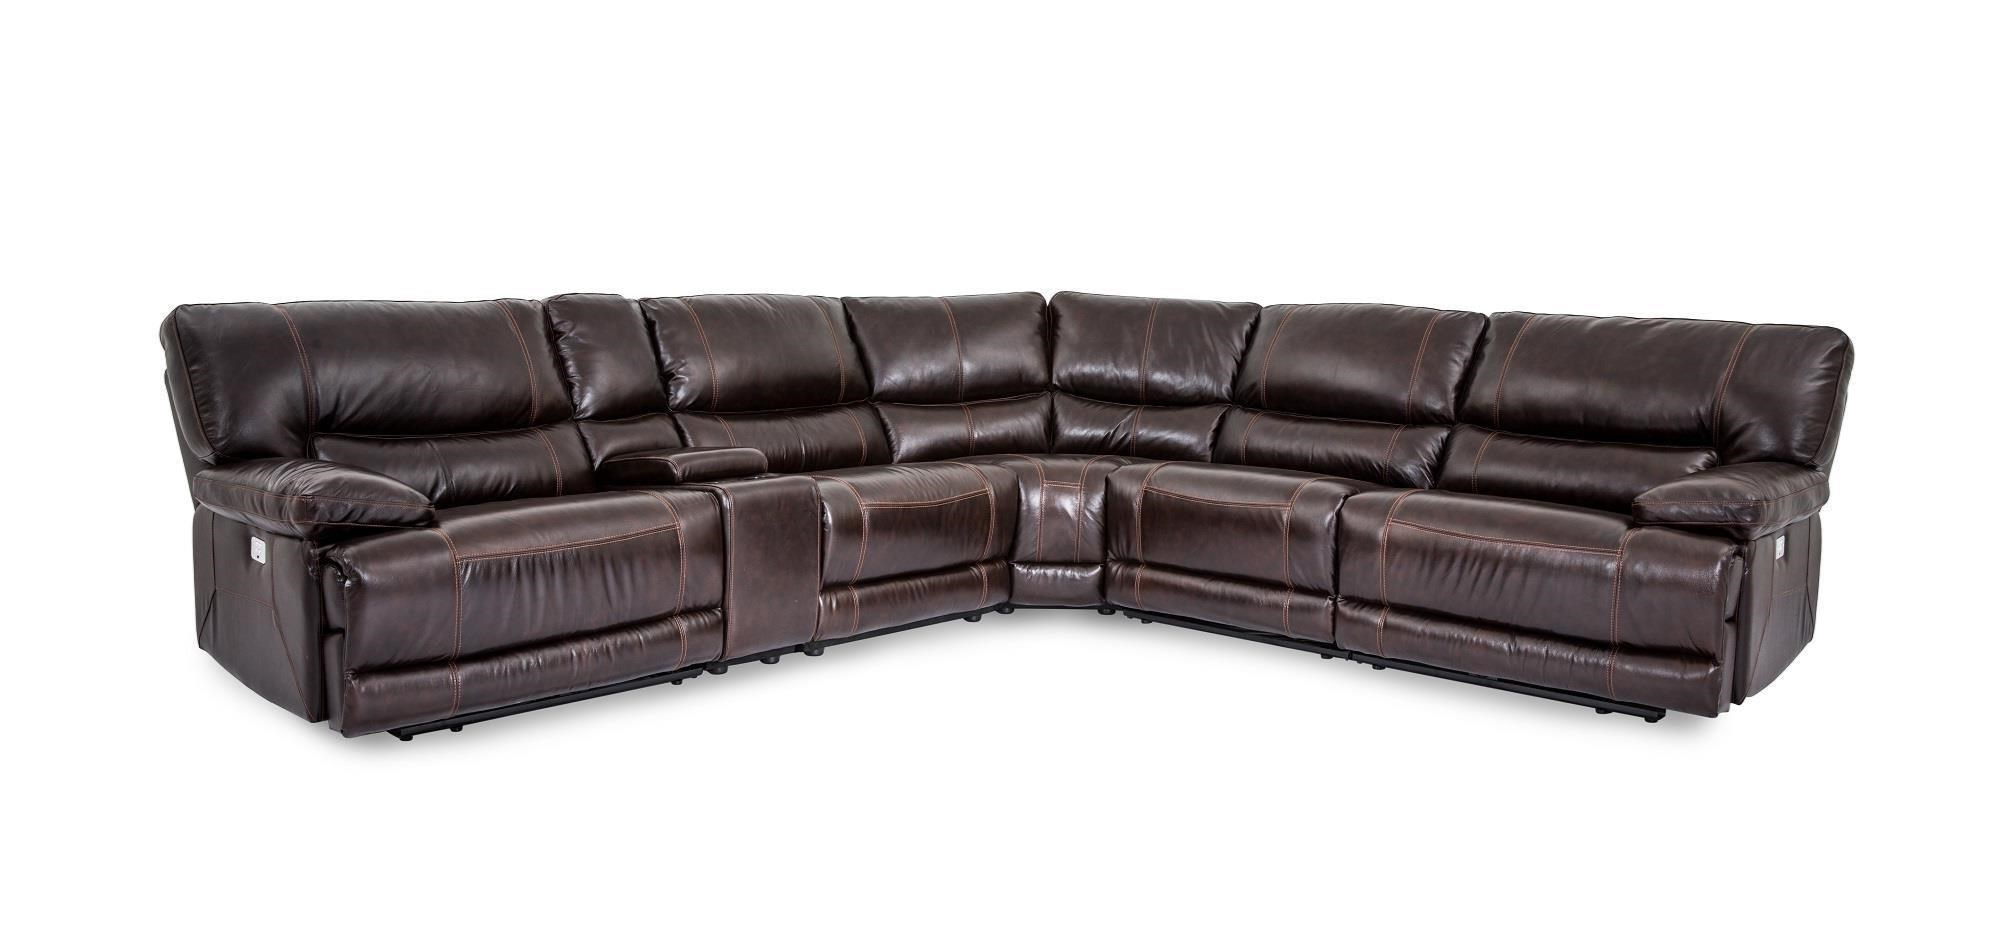 Bon Cheers Sofa X9509MCollins Leather Power Reclining 6 Piece Sect ...